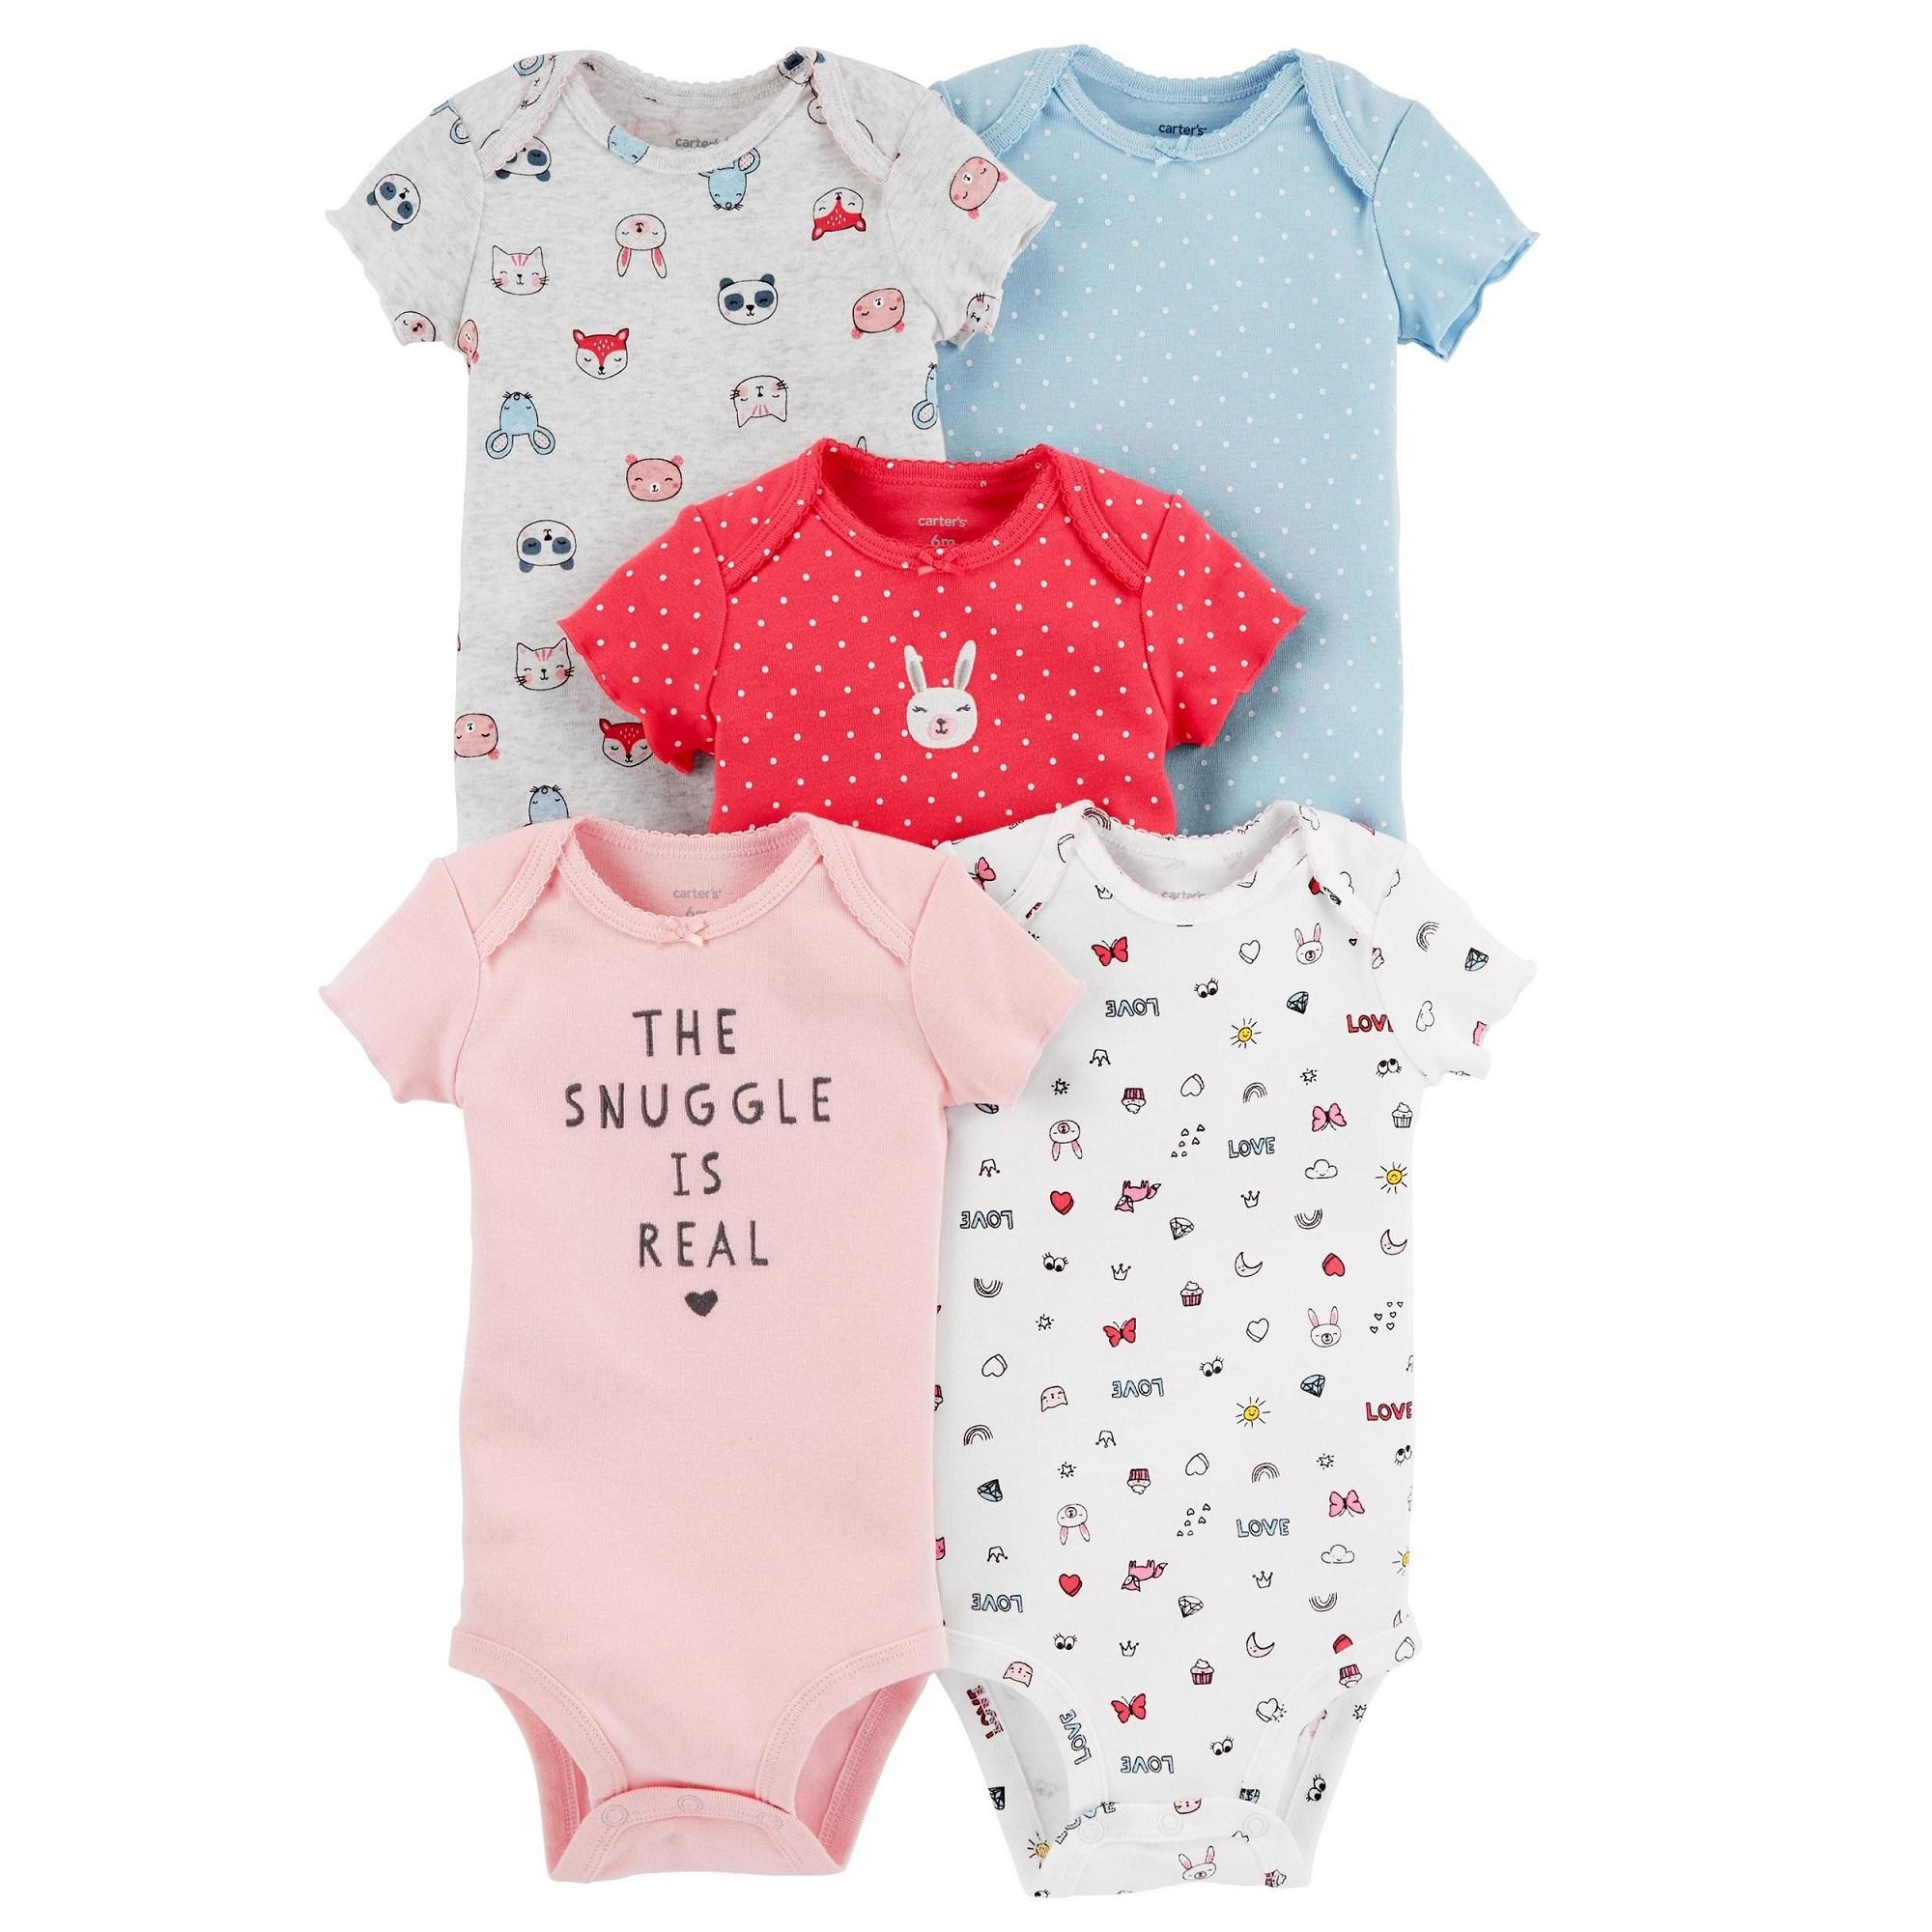 Buy Carter Baby Clothing Accessories Lazada Jumper Carters 5 In 1 Cagl191 Pack Short Sleeve Original Bodysuits Bunny